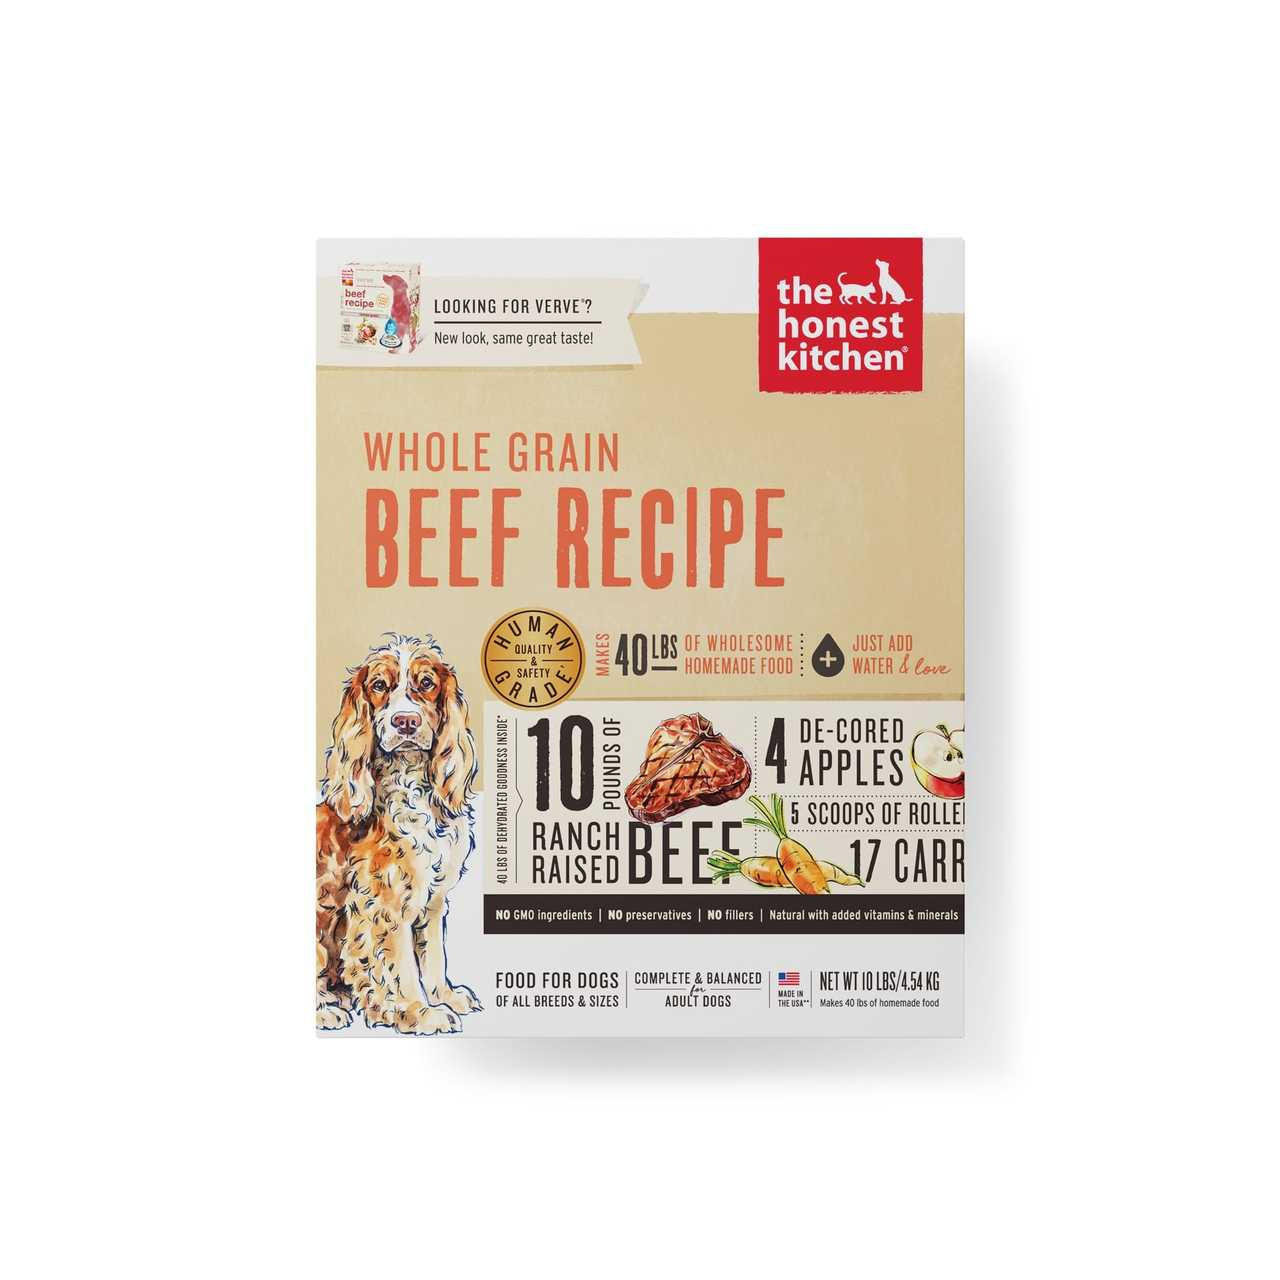 The Honest Kitchen Whole Grain Beef Recipe (VERVE) Dehydrated Dog Food